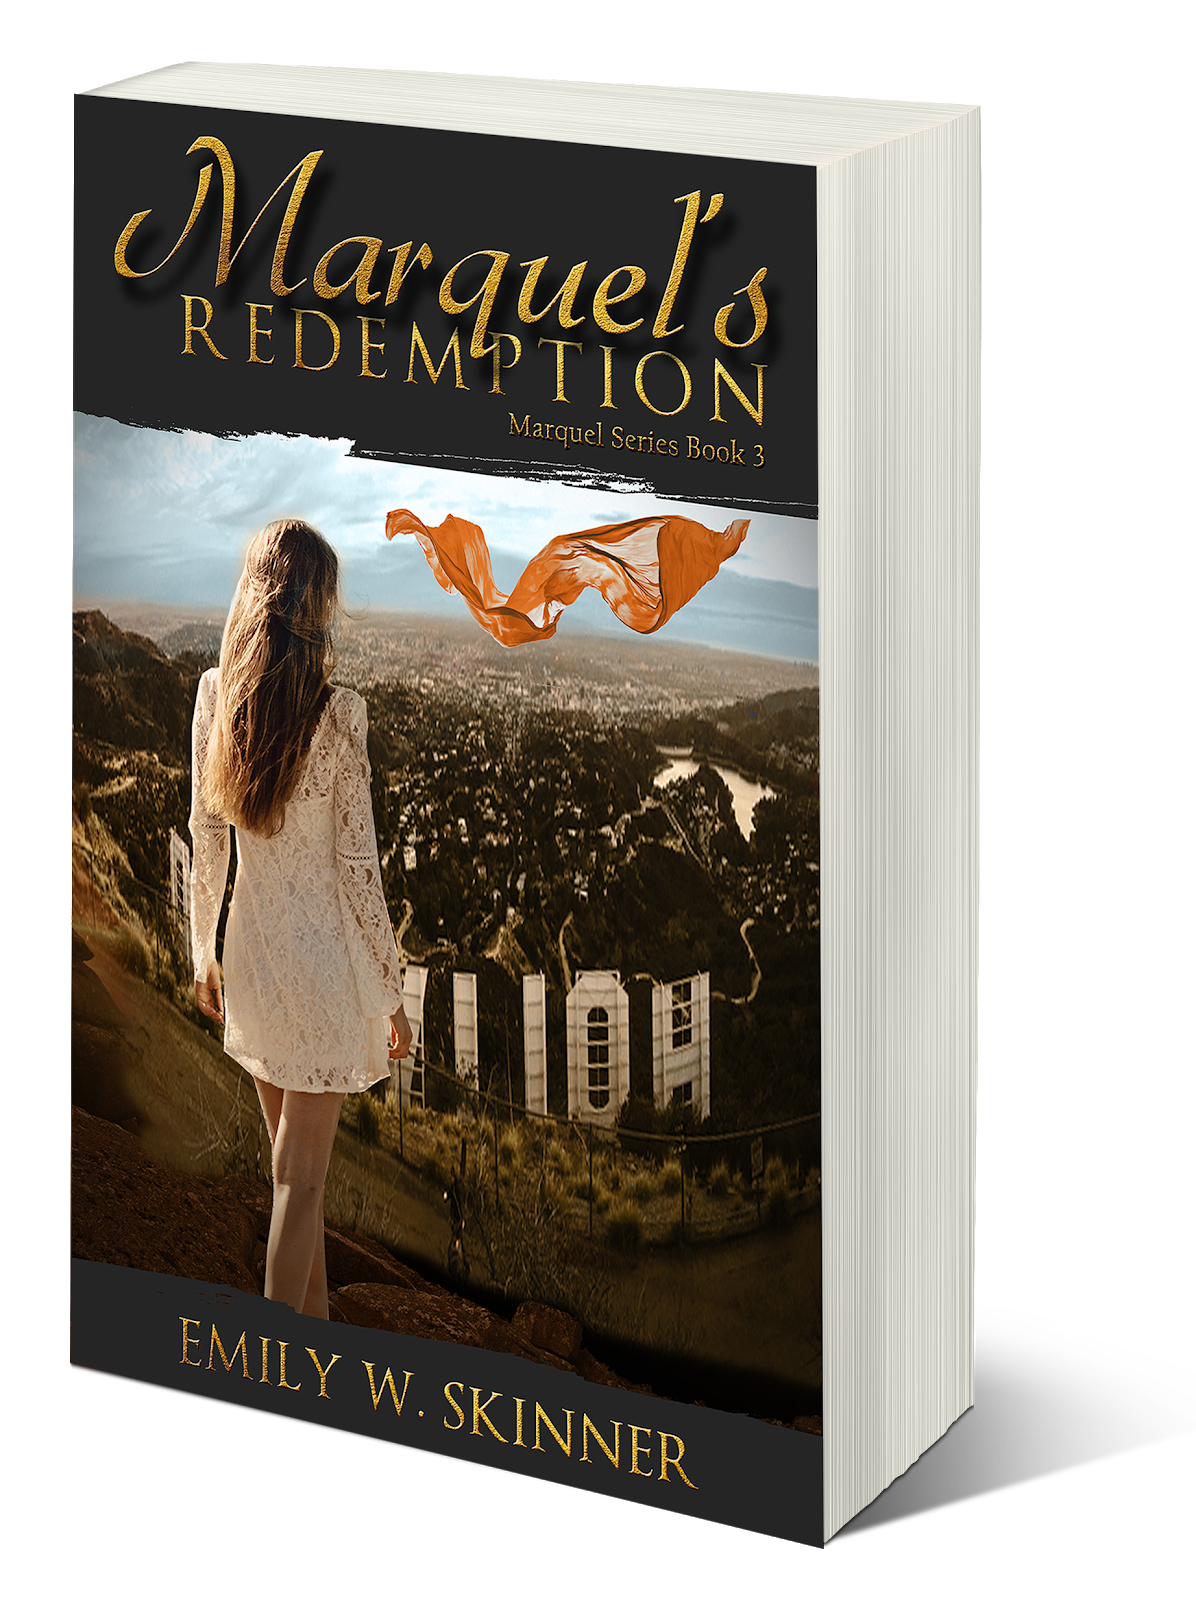 Marquel's Redemption - Book 3 in series